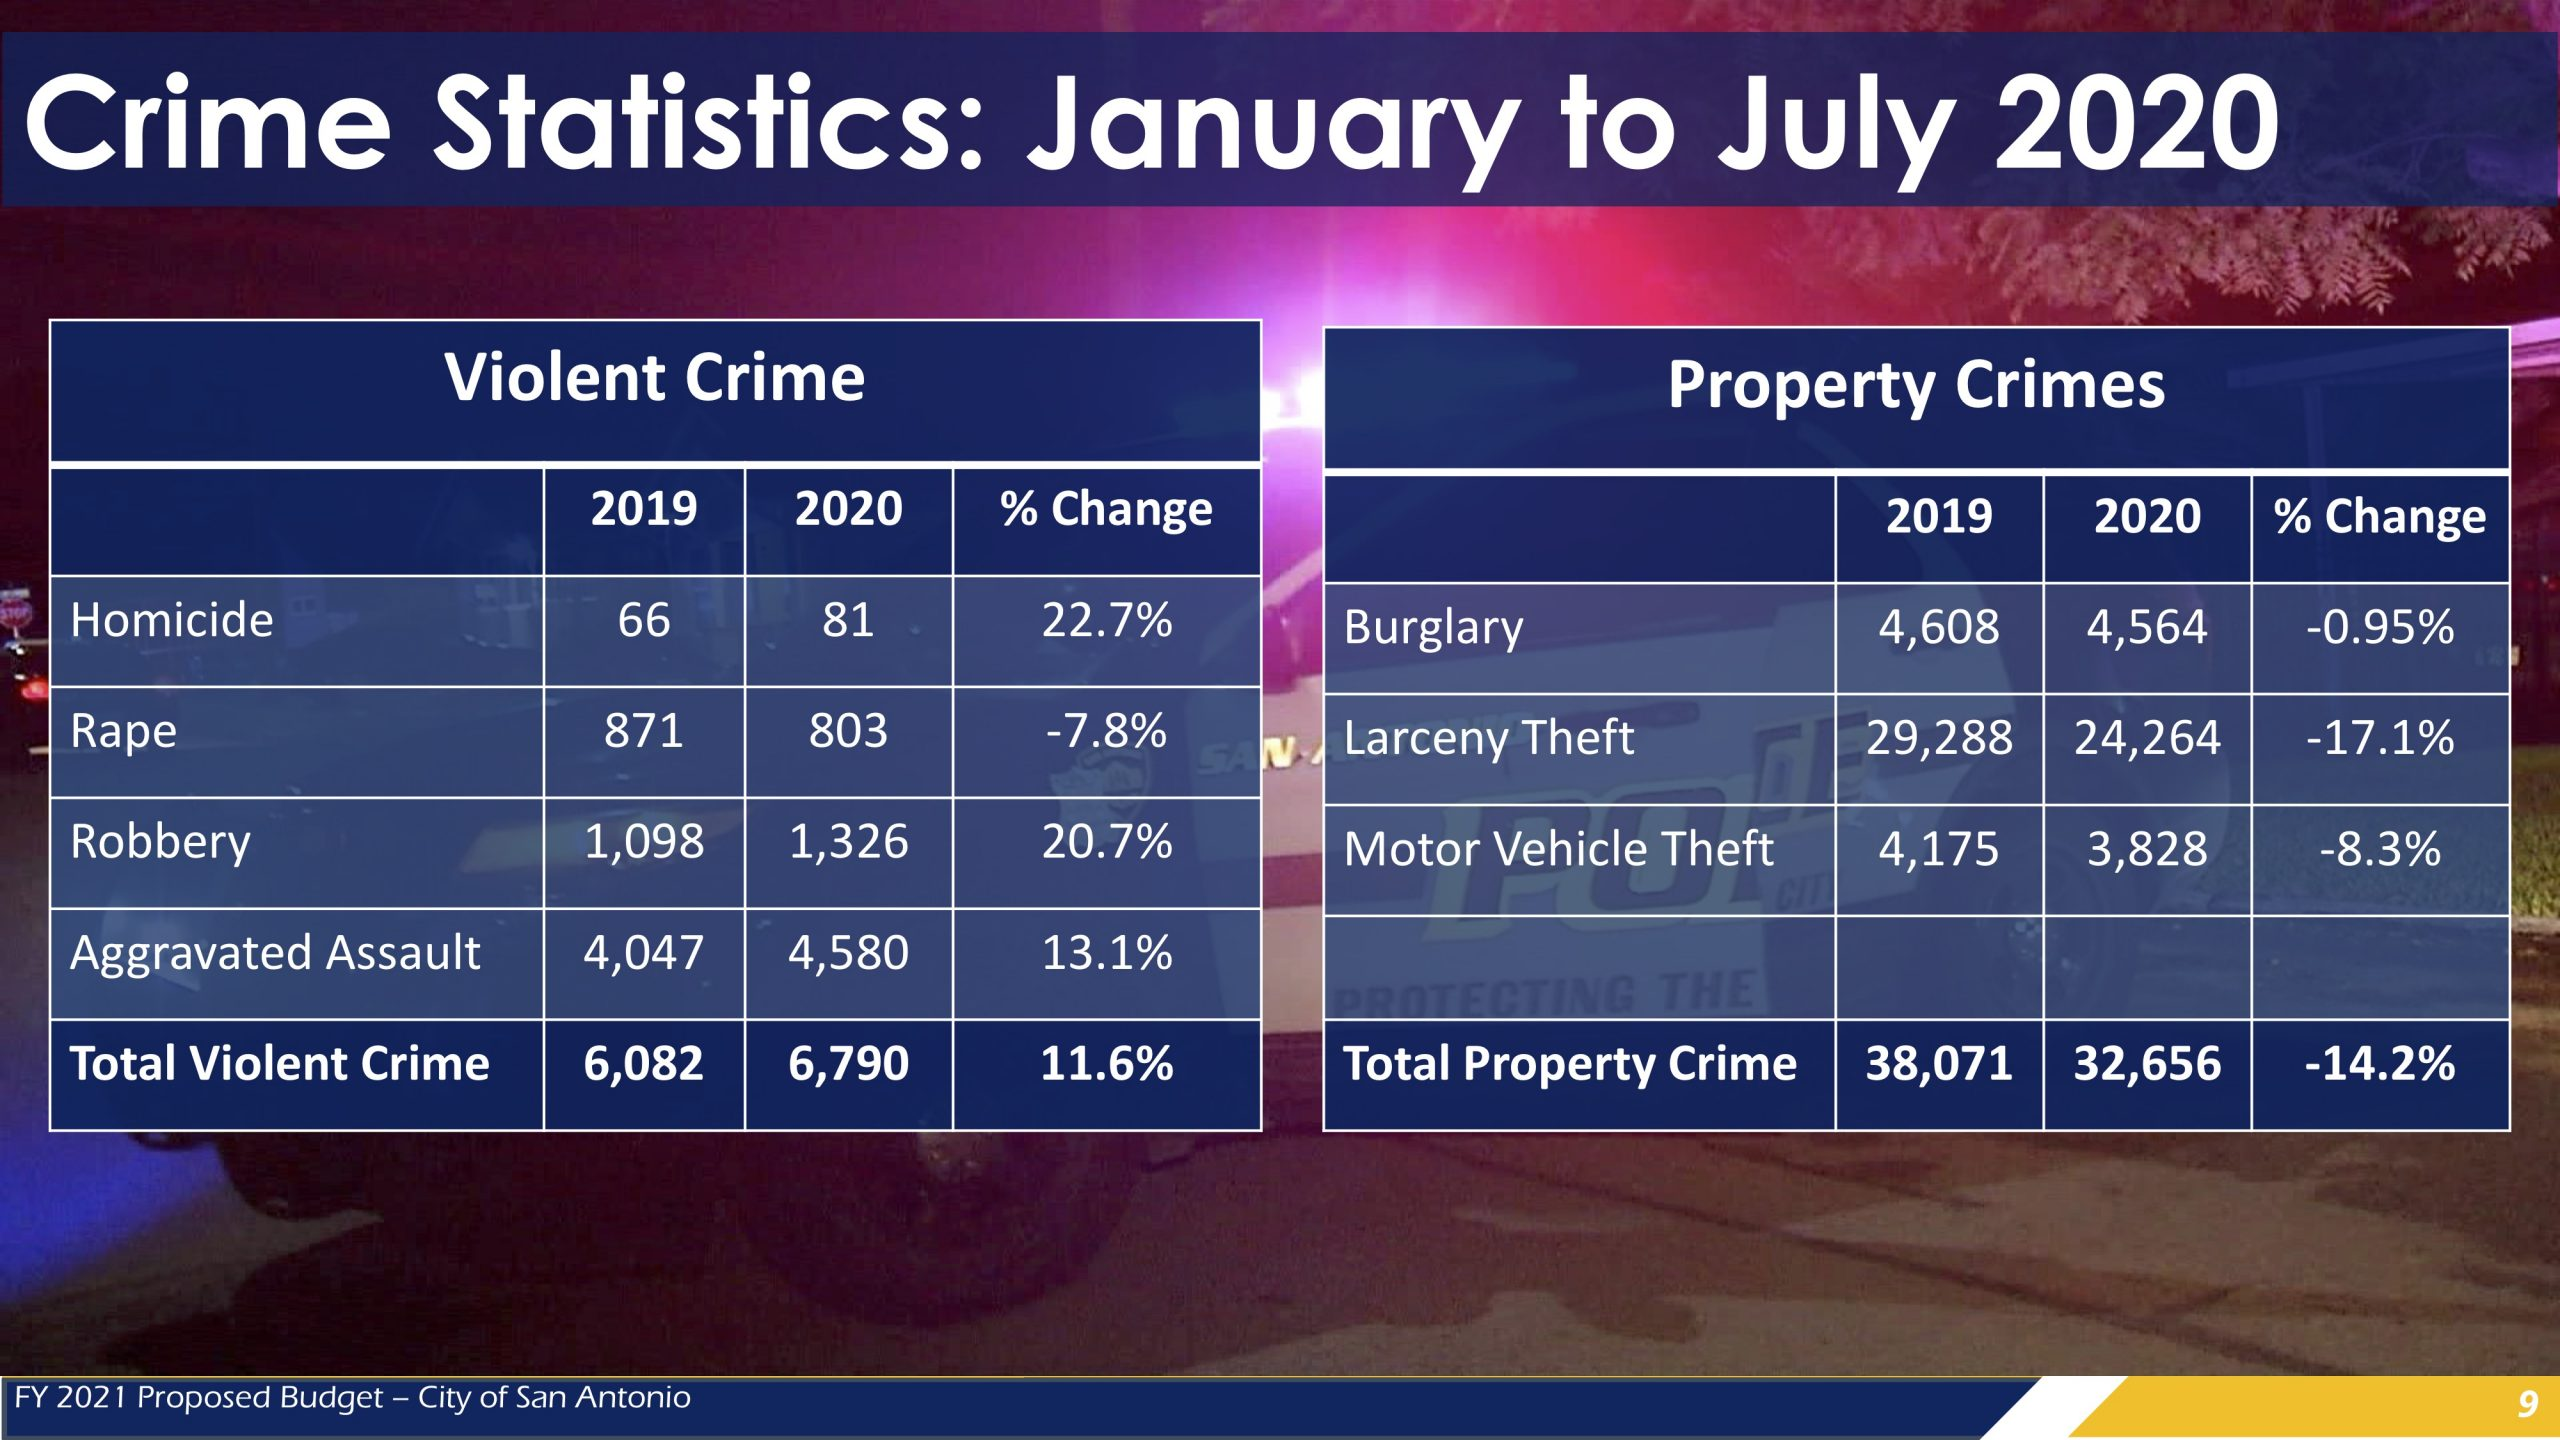 This graphic compares the number of property and violent crimes in San Antonio between January and July during 2019 and 2020.